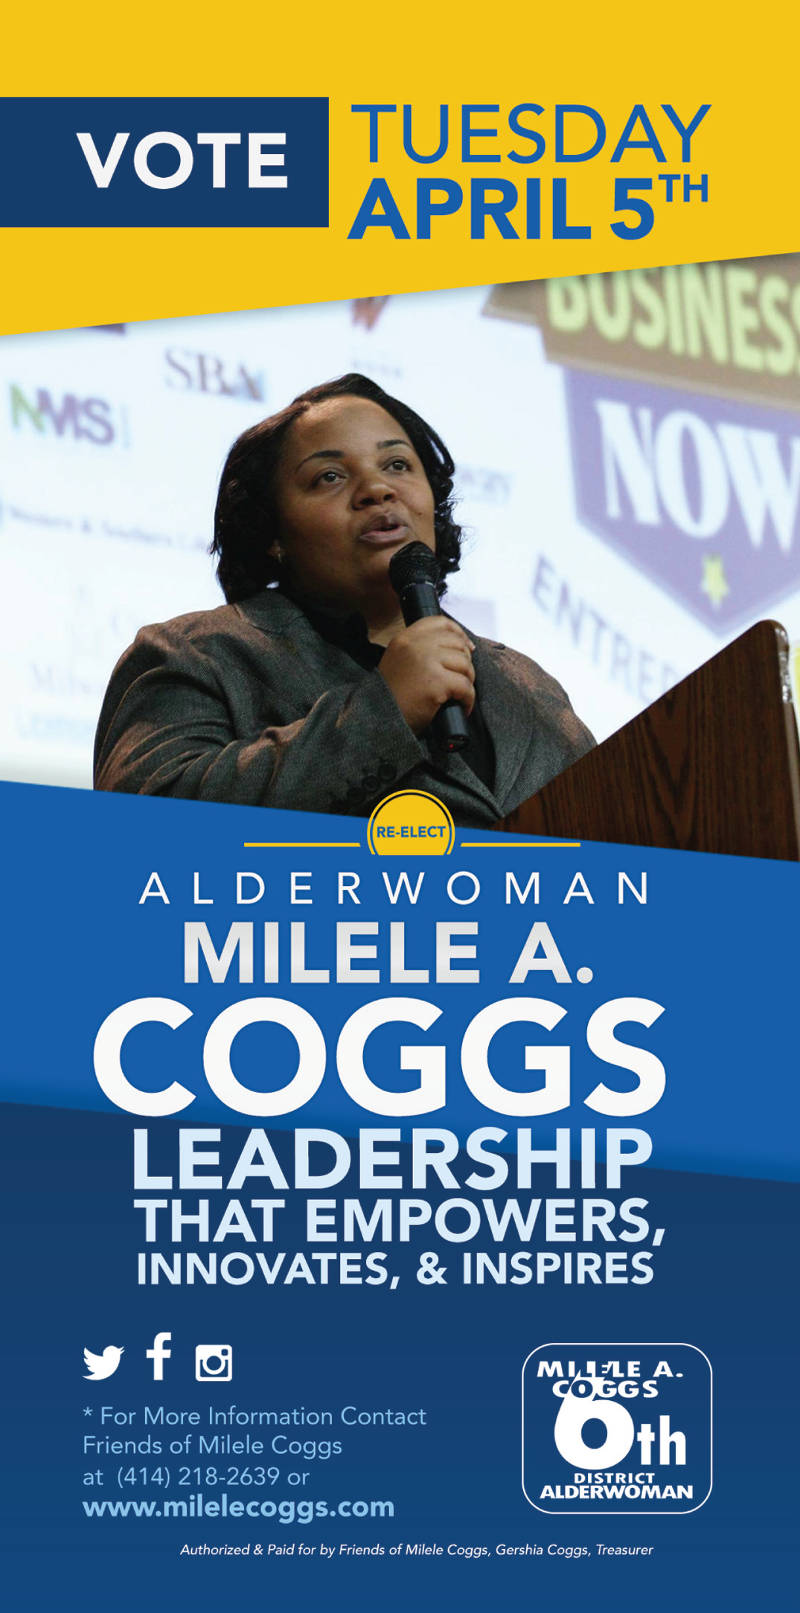 vote-april-5-alderwoman-milele-a-coggs-leadership-empowers-innovates-inspires